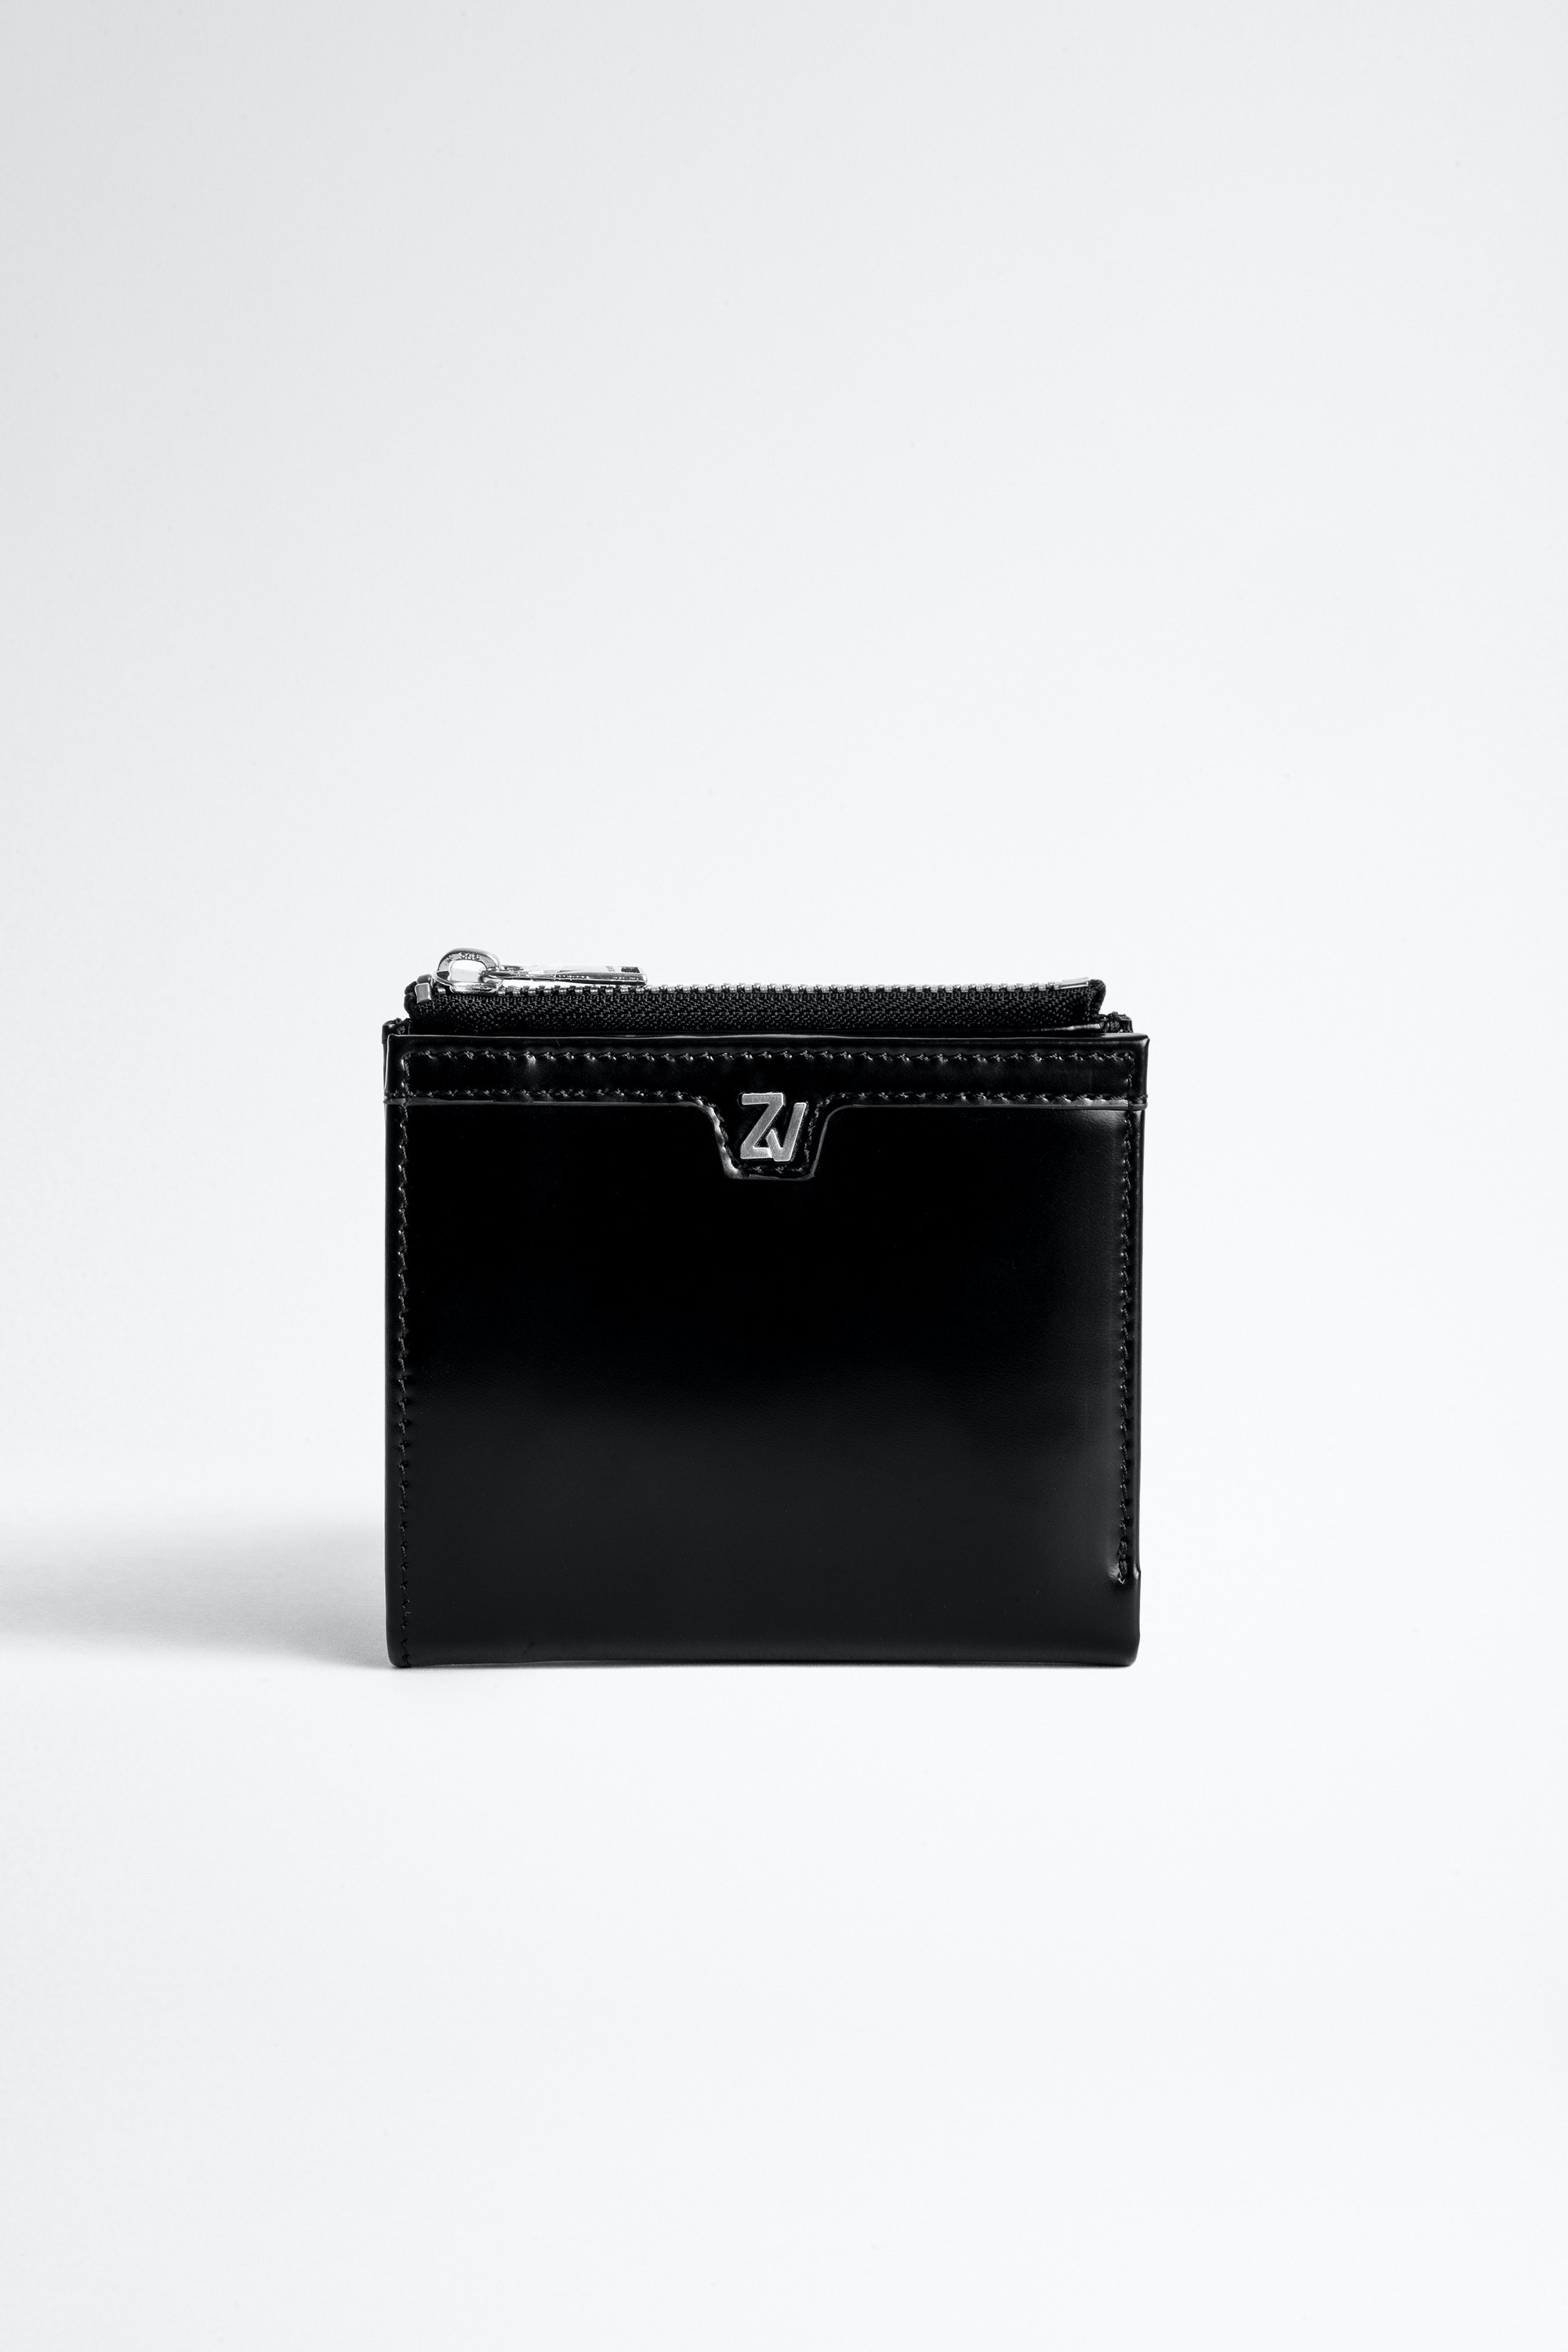 ZV Initiale Noam Card Holder